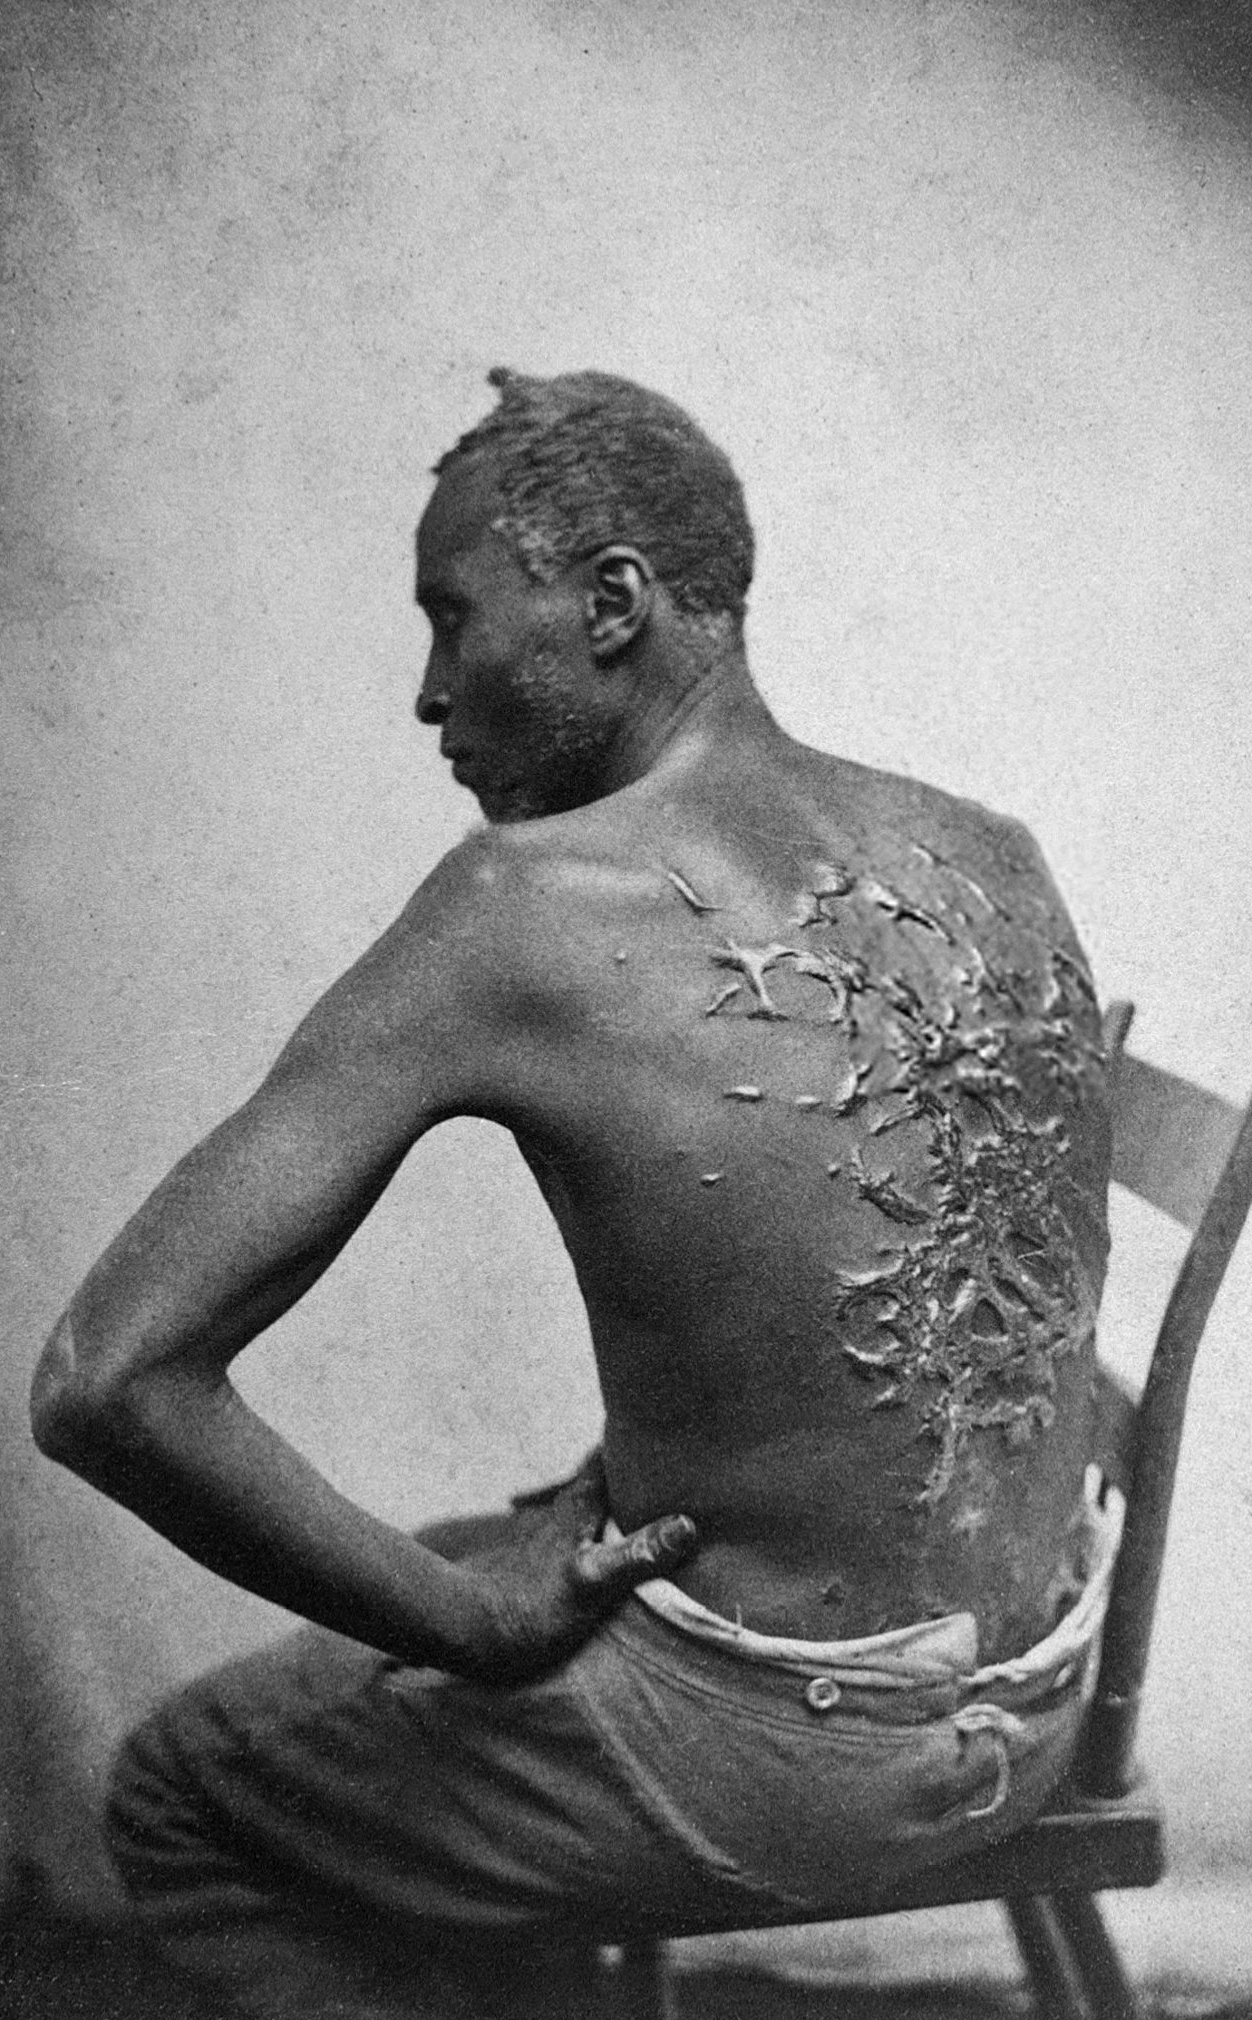 Scourged_back_by_McPherson_&_Oliver,_1863,_retouched.jpg